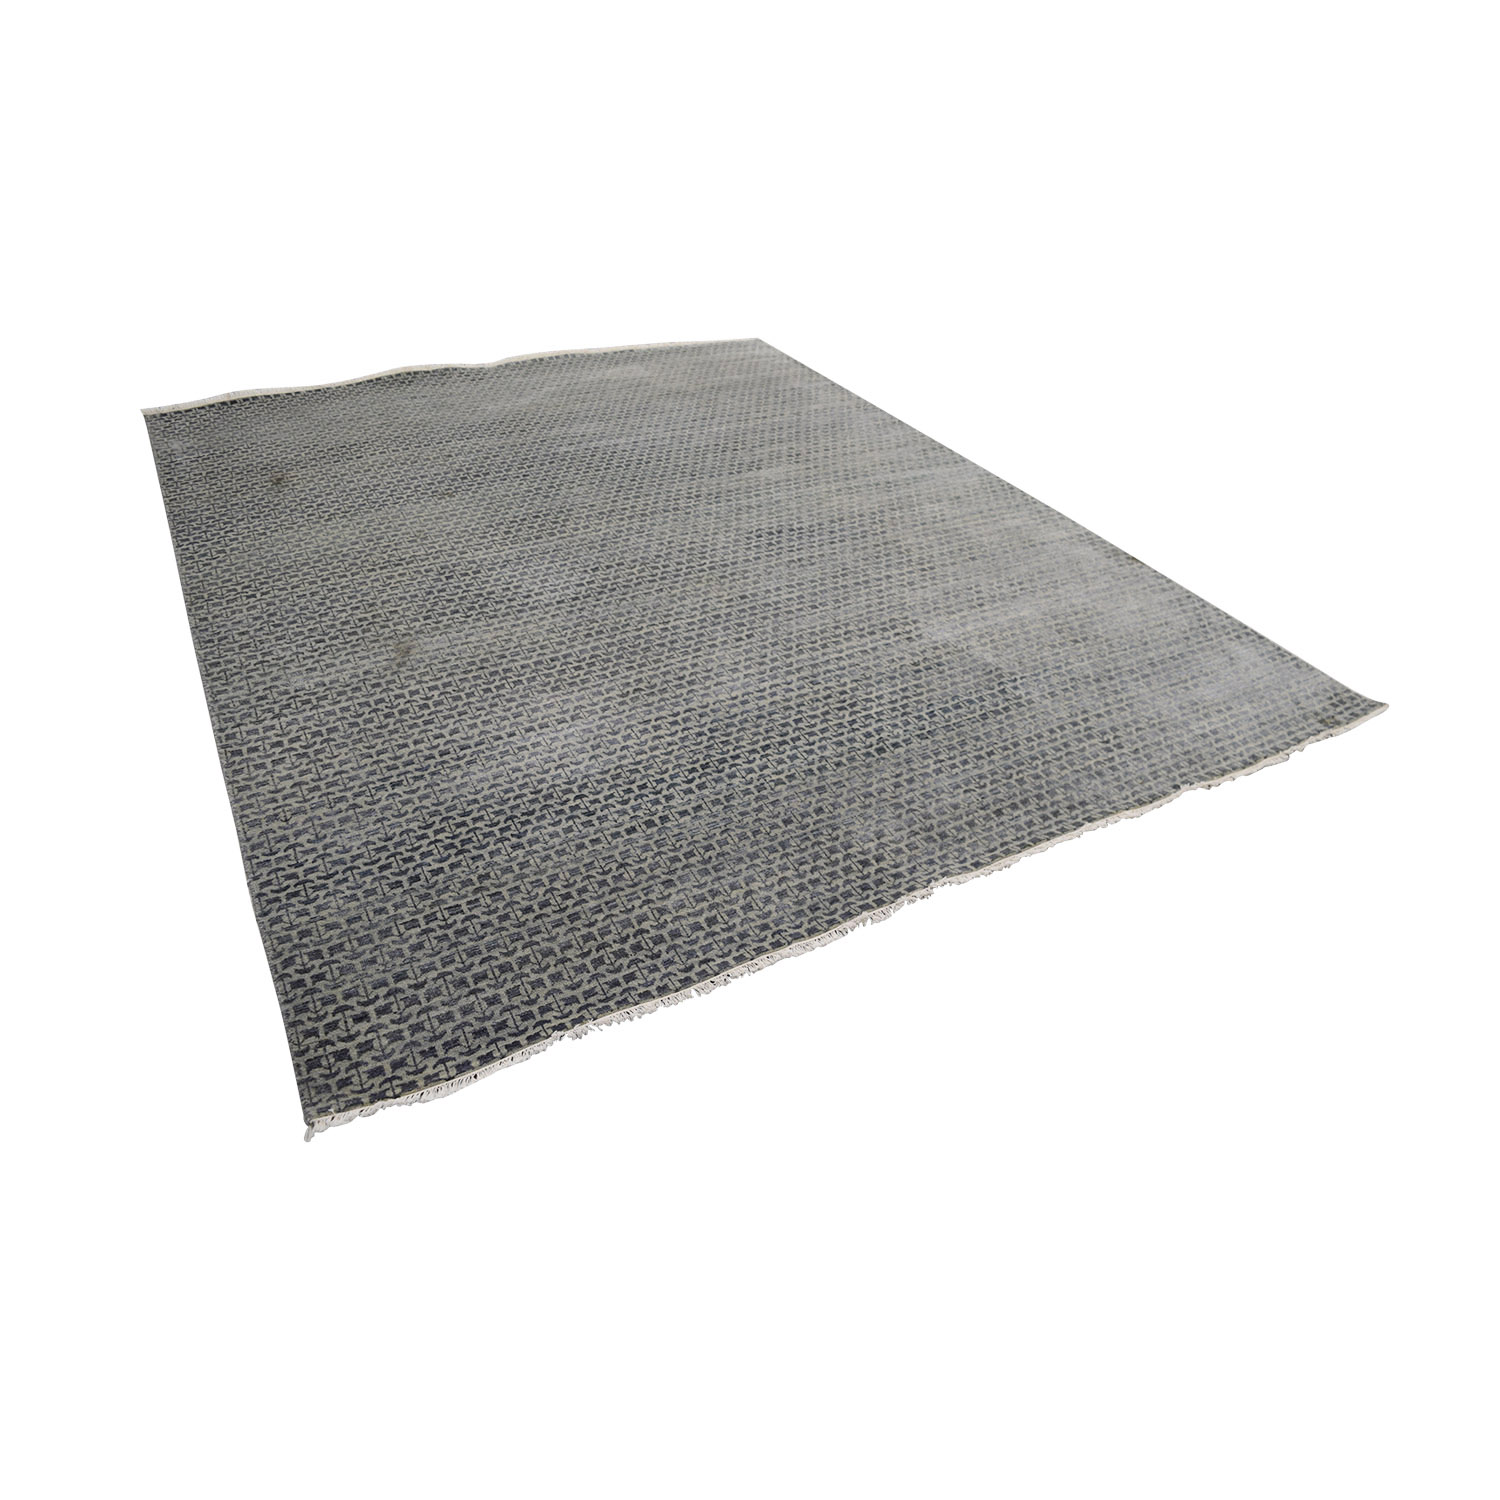 Obeetee Obeetee Hand Knotted Blue Grey Wool Rug Rugs